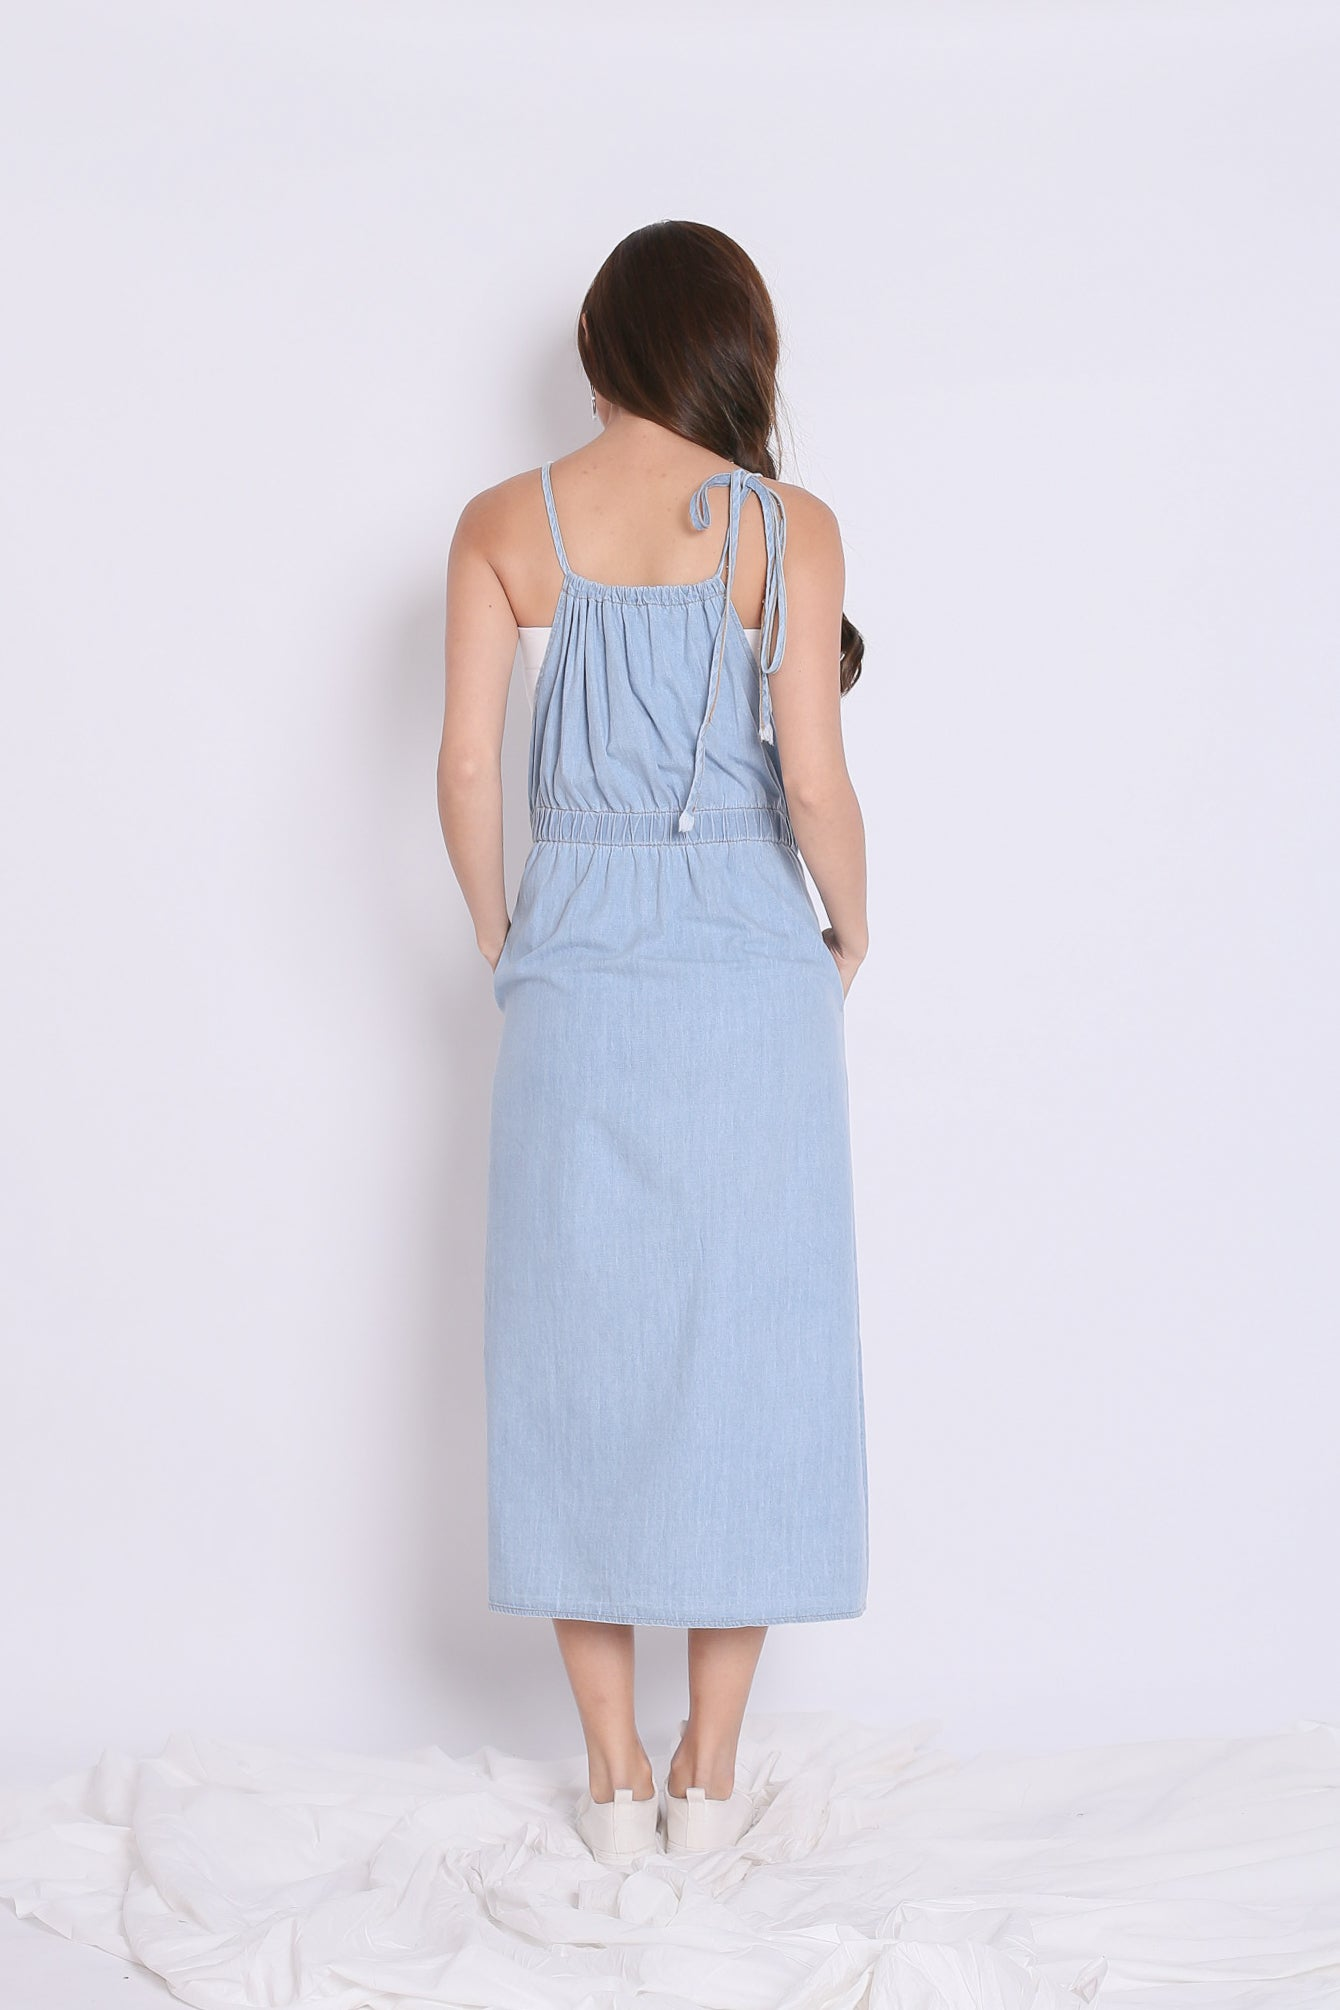 AVERIE DUNGAREE DRESS IN LIGHT WASH